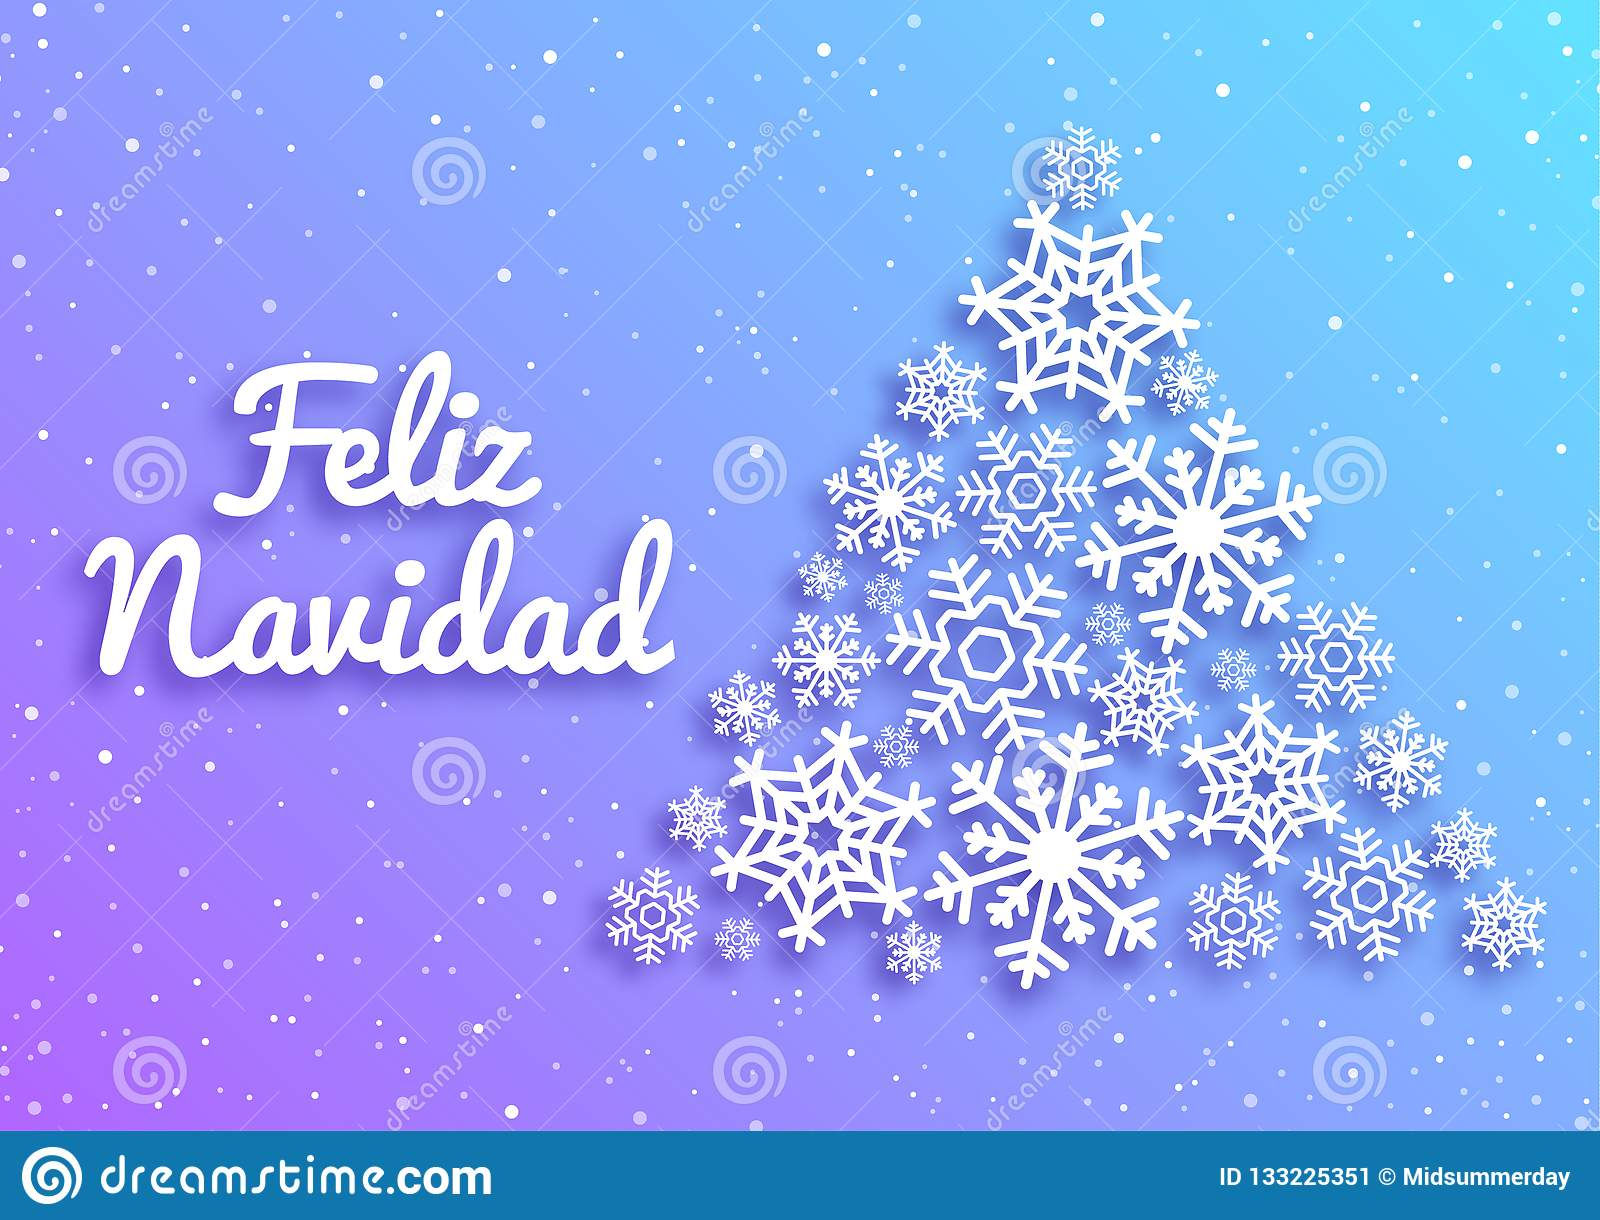 Feliz Navidad Merry Christmas Card With Greetings In Spanish